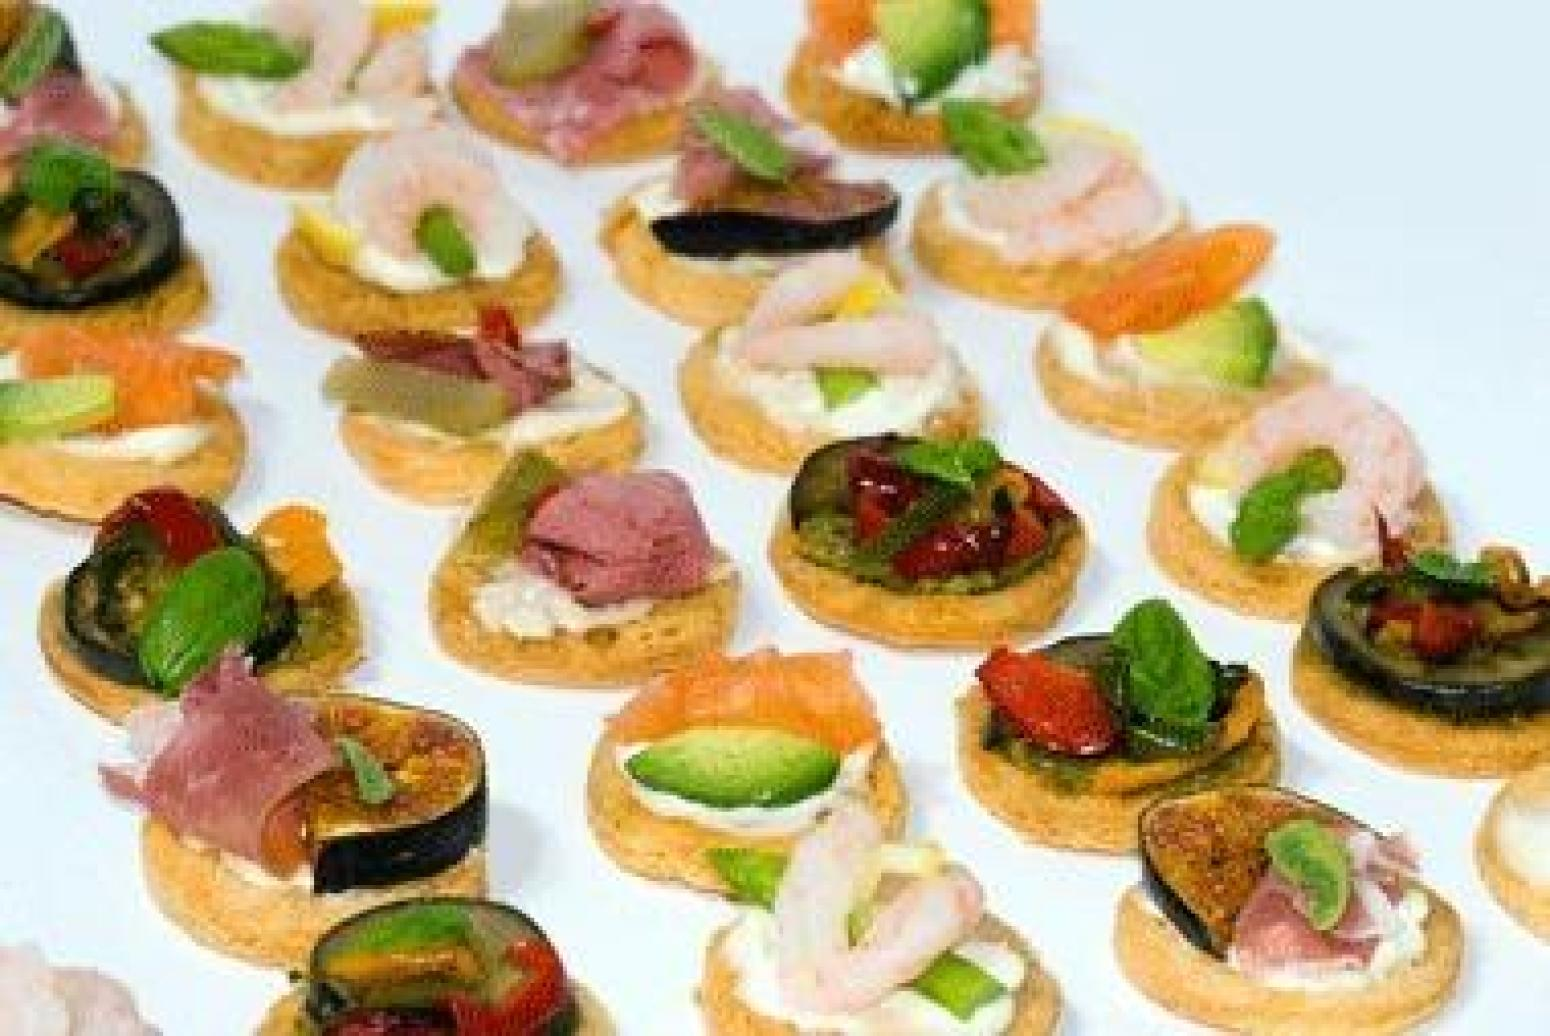 Canap s recipe 101 just a pinch recipes for Party canape ideas